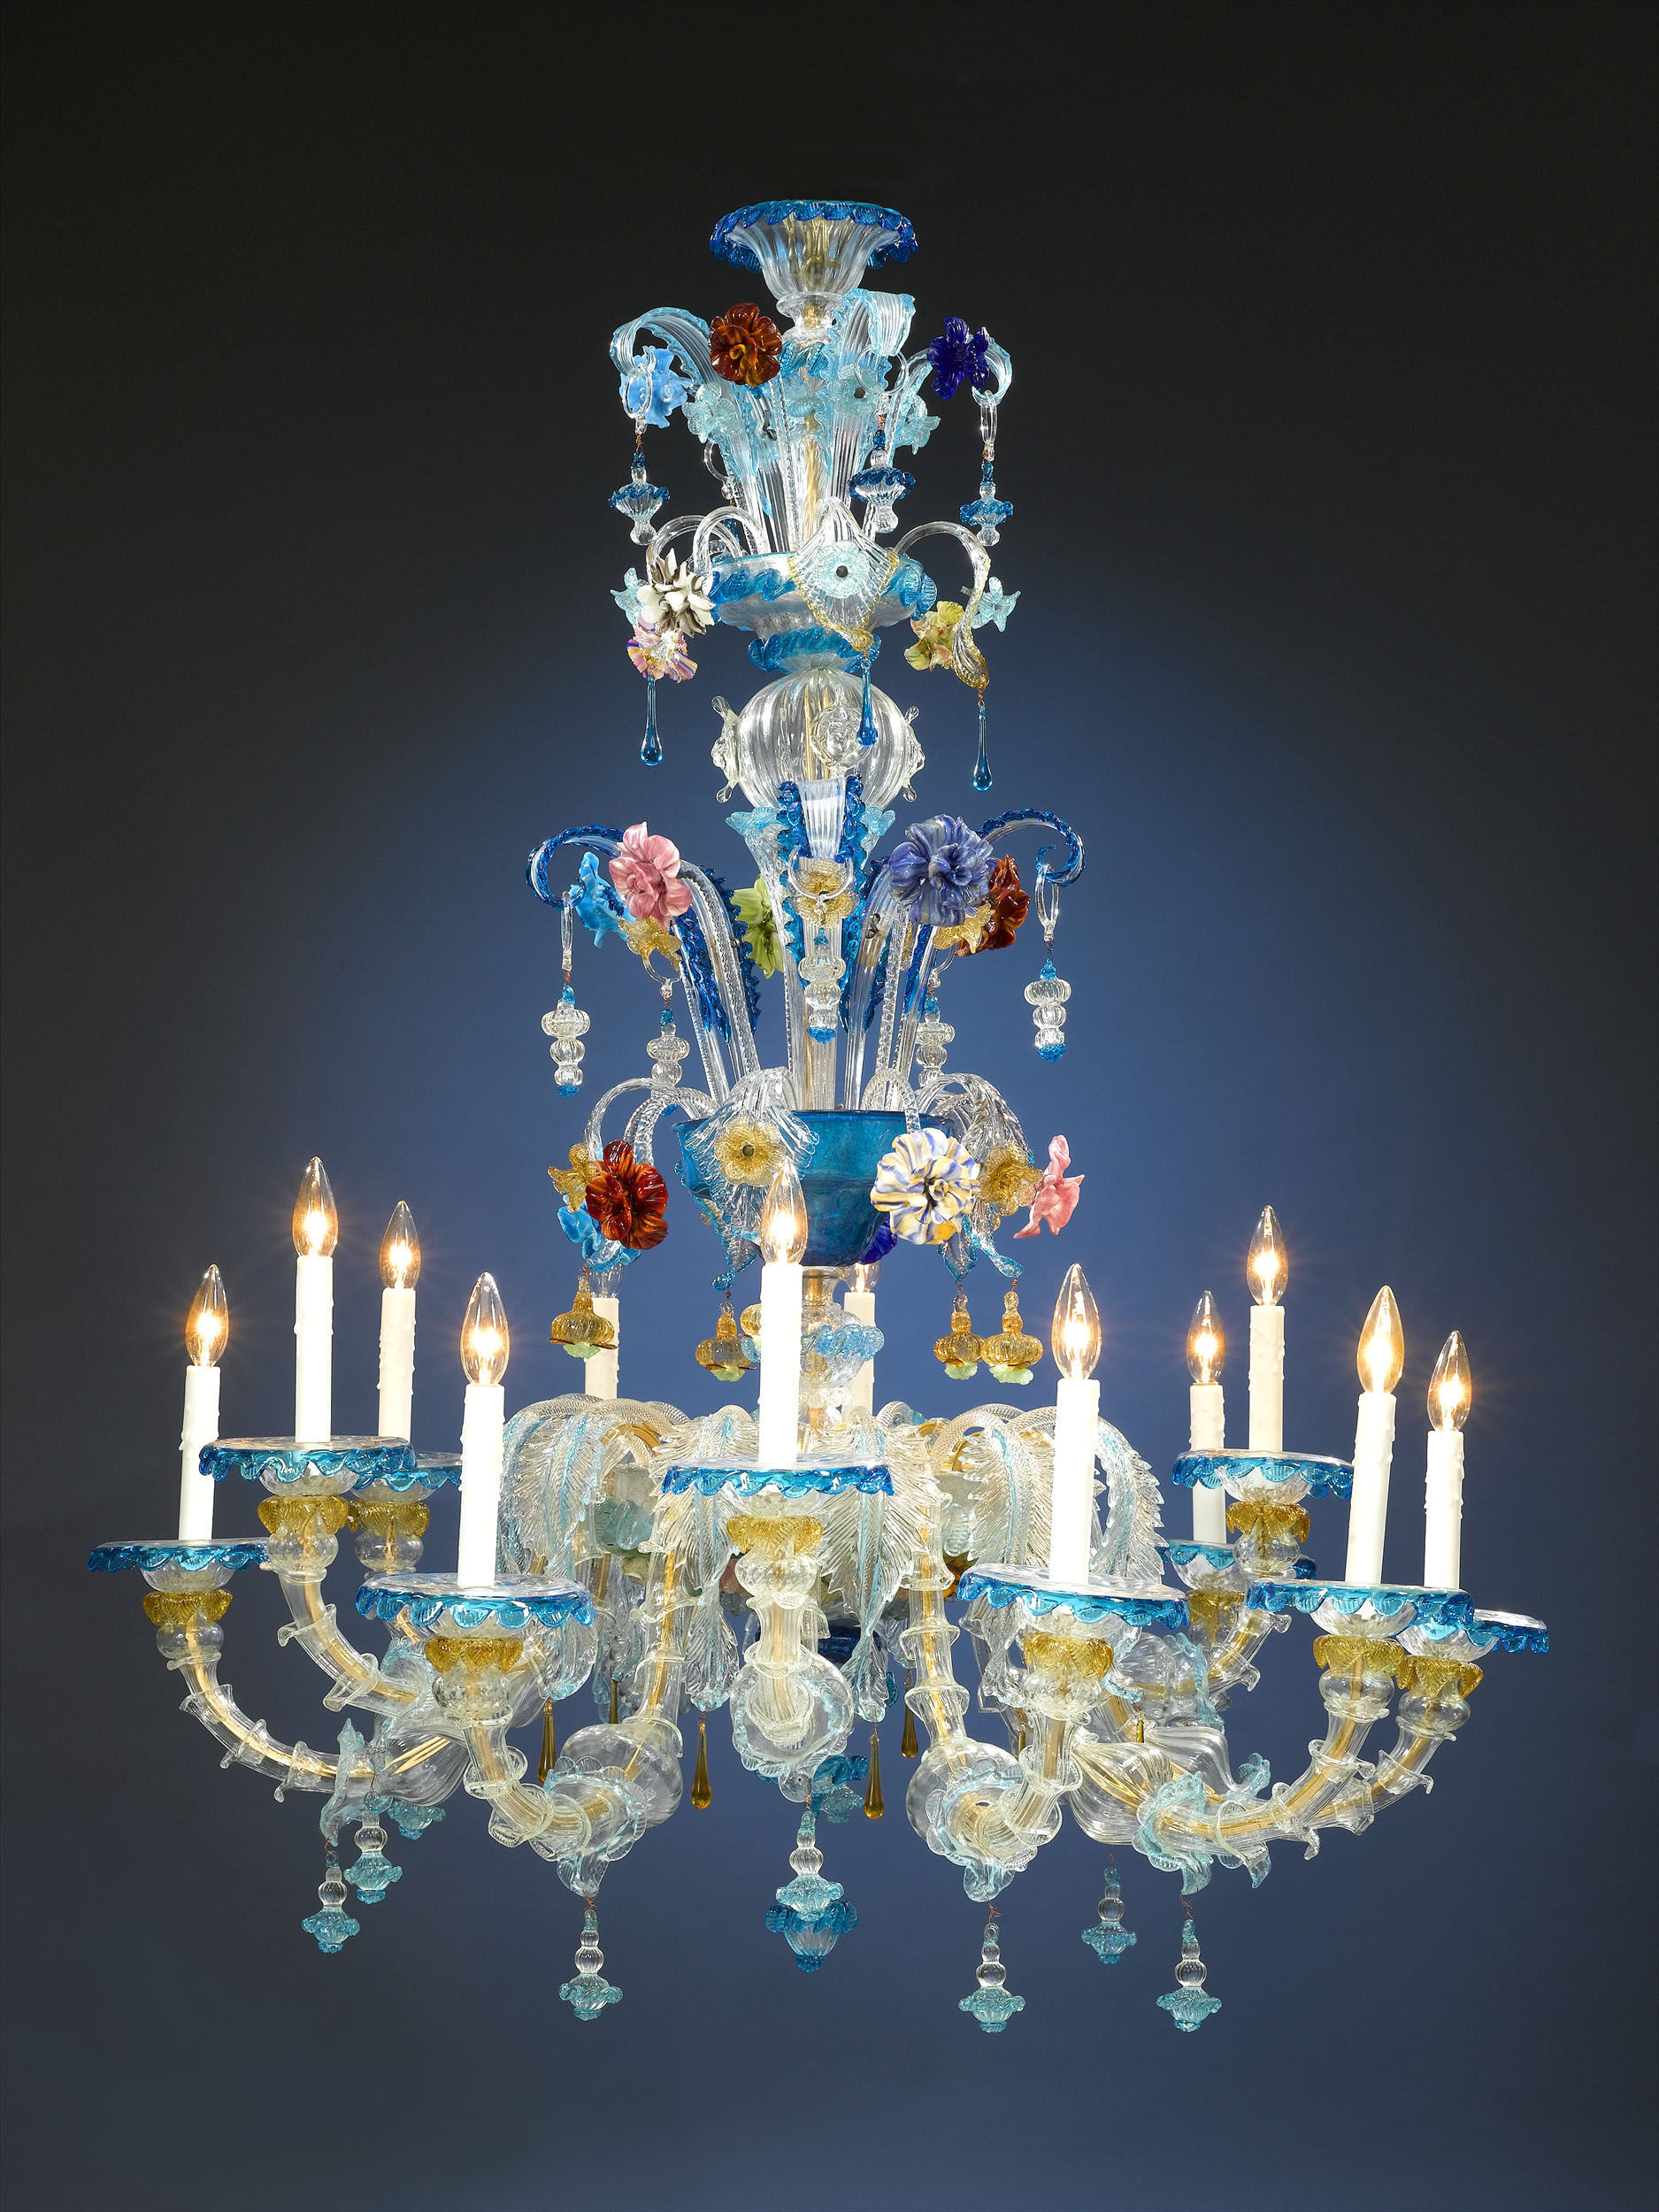 venetian glass nella in chandelier veneziani melissa light vetrina chandeliers blue murano